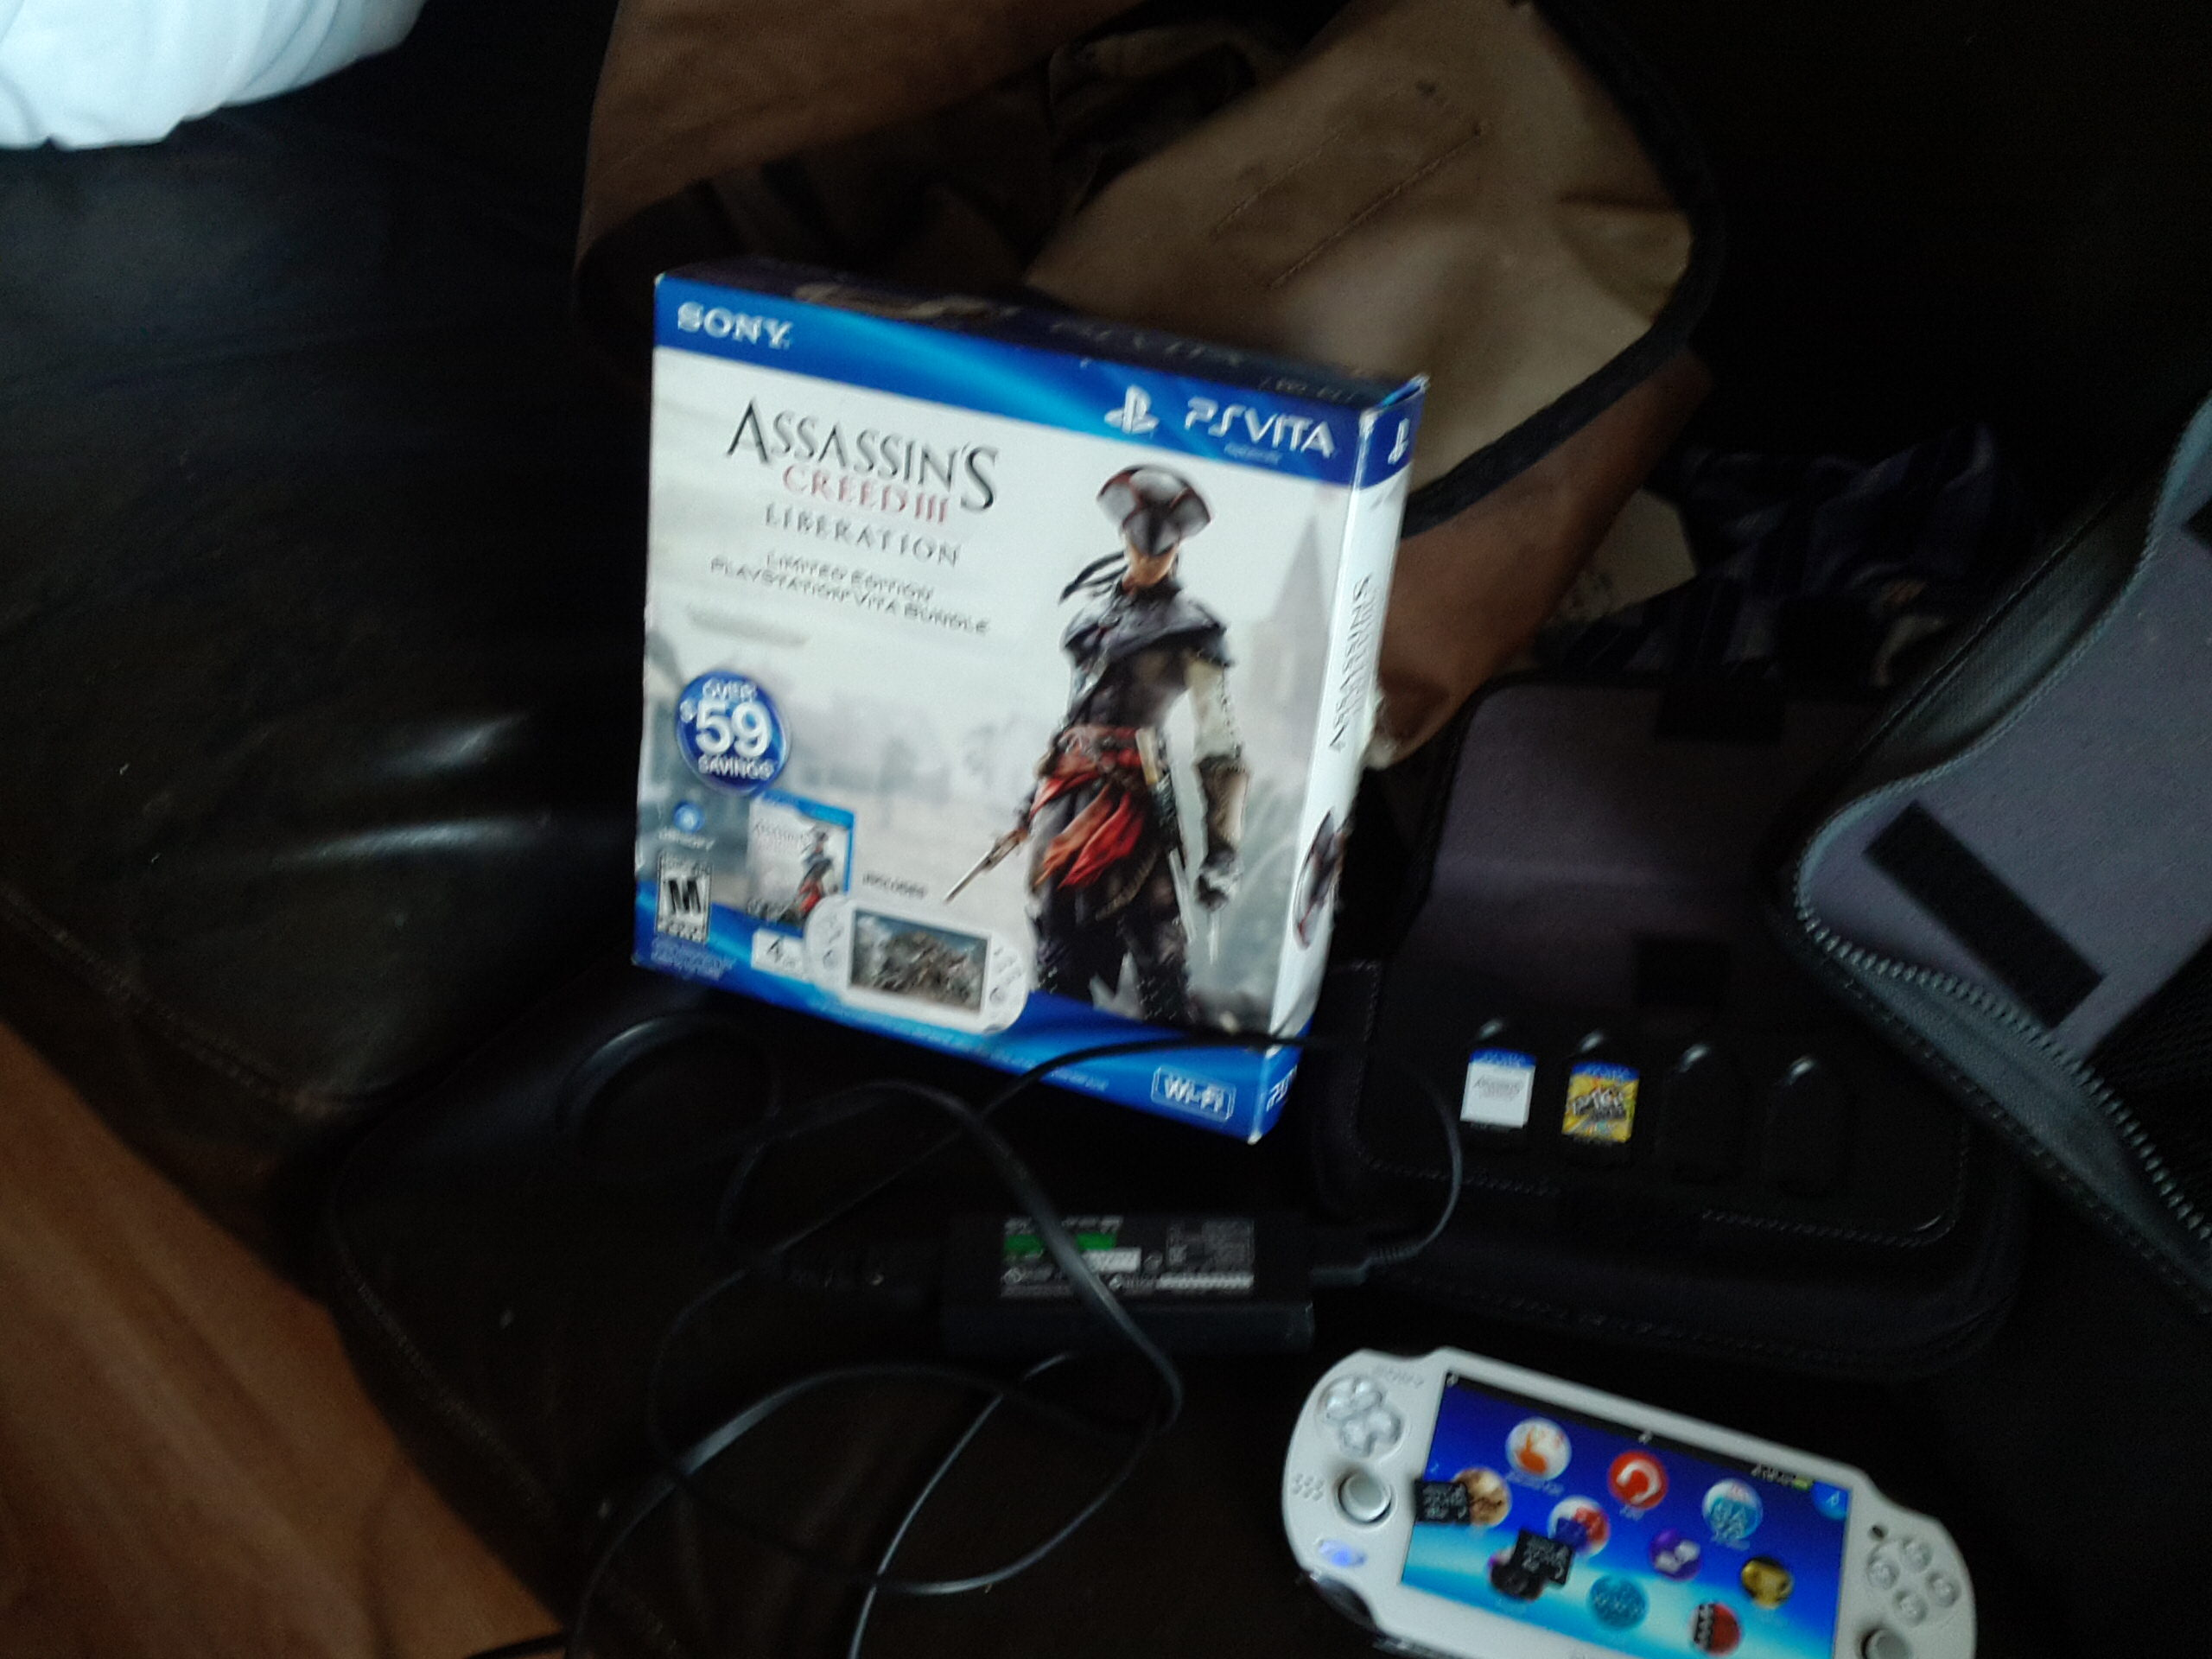 aristio  come just games really interested nothing would more used except soul them about didnt take picture forgot cards does sacrifice with augmented reality thought table breaking 200 warning vita holidays rarely money need selling because